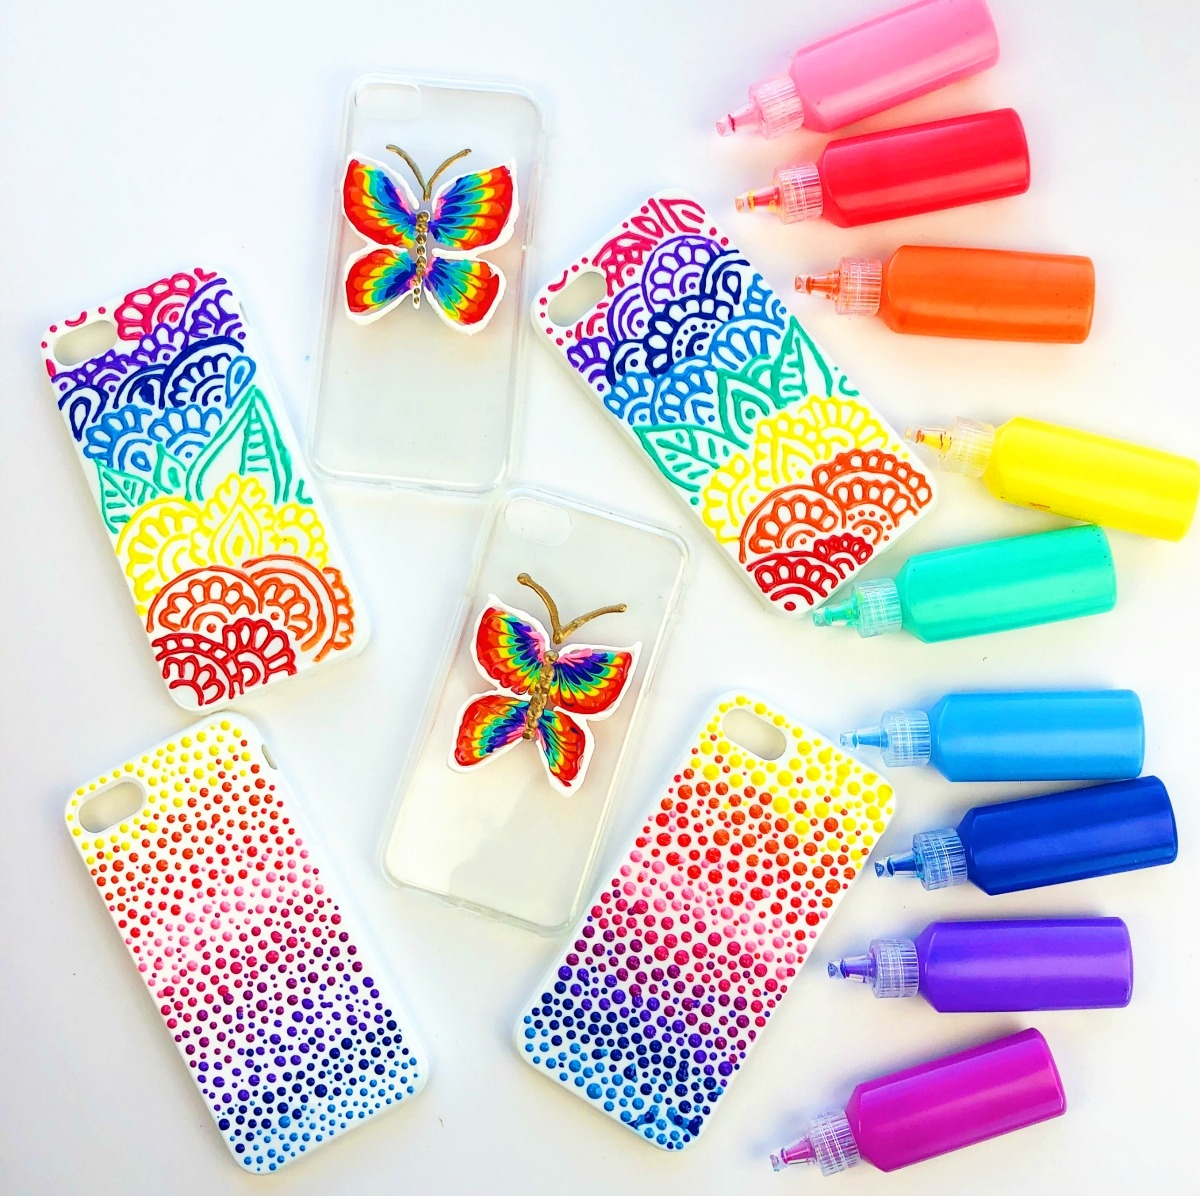 Variety of Dimensional Fabric Paint decorated phone cases